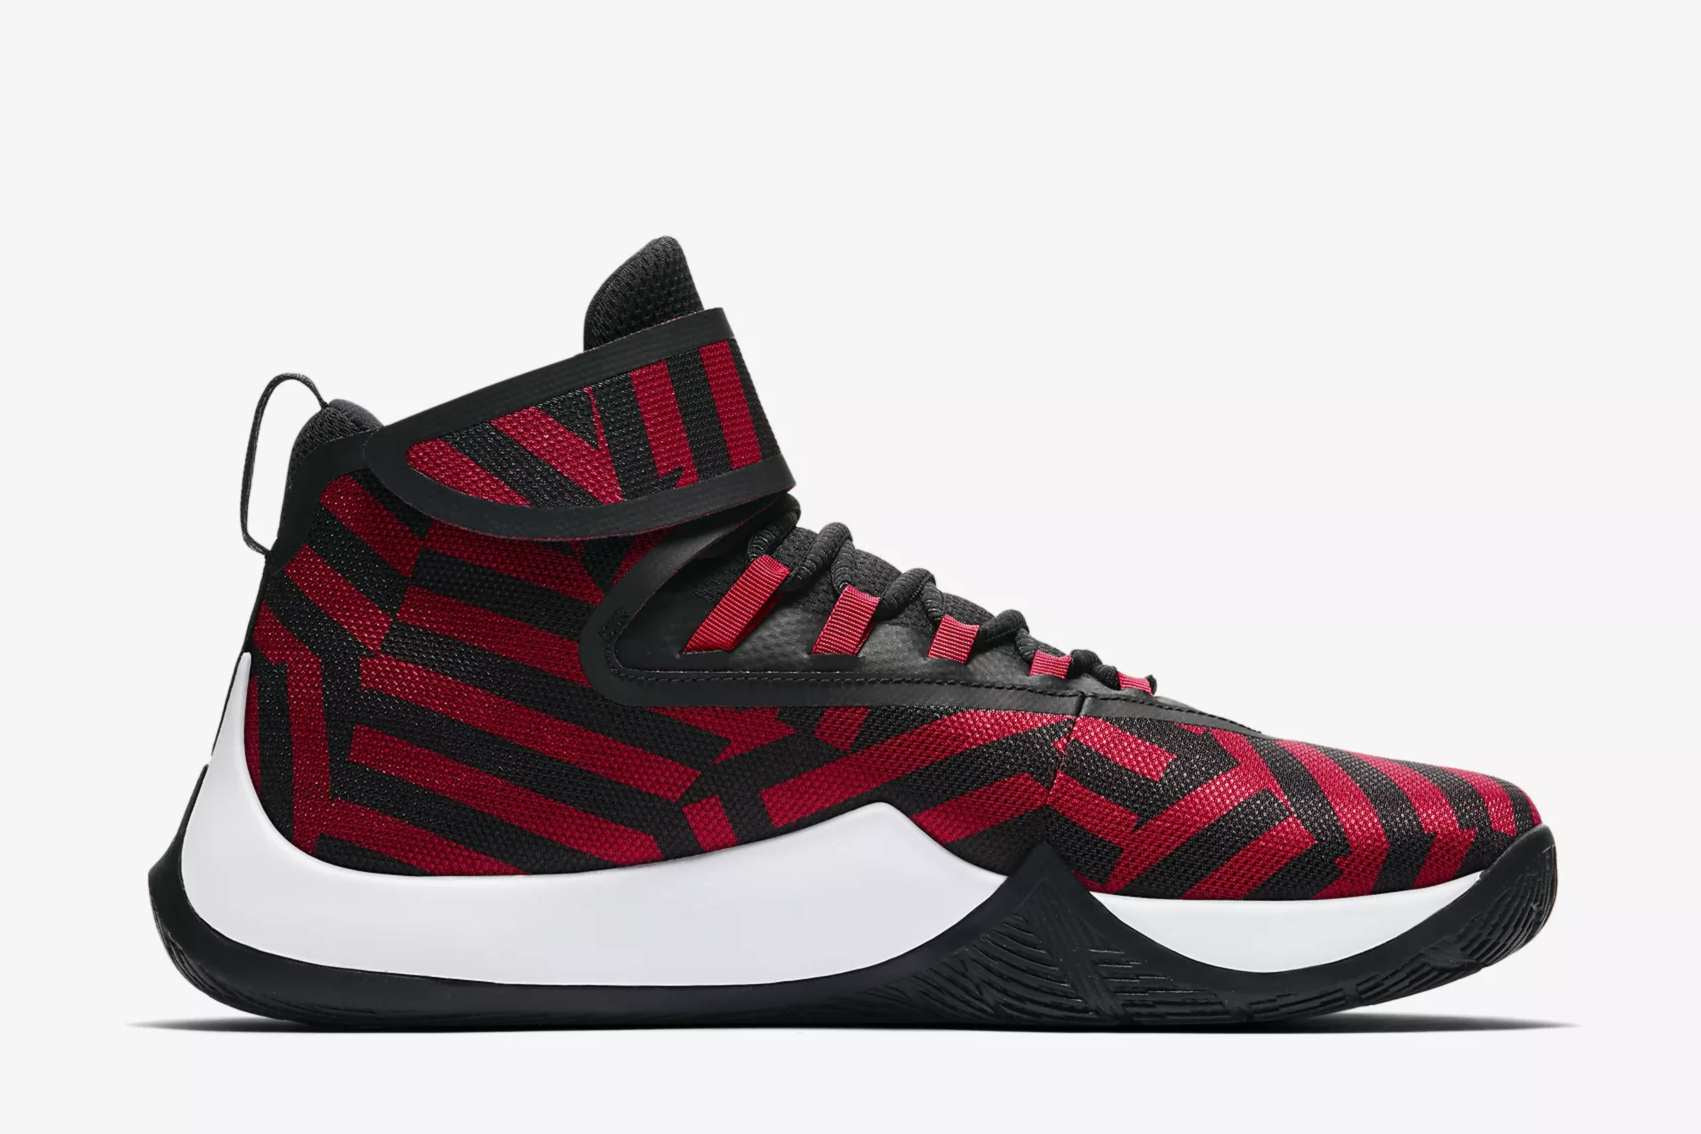 Nike Jordan Fly Unlimited Basketball Boot/Shoe - Gym Red/Black